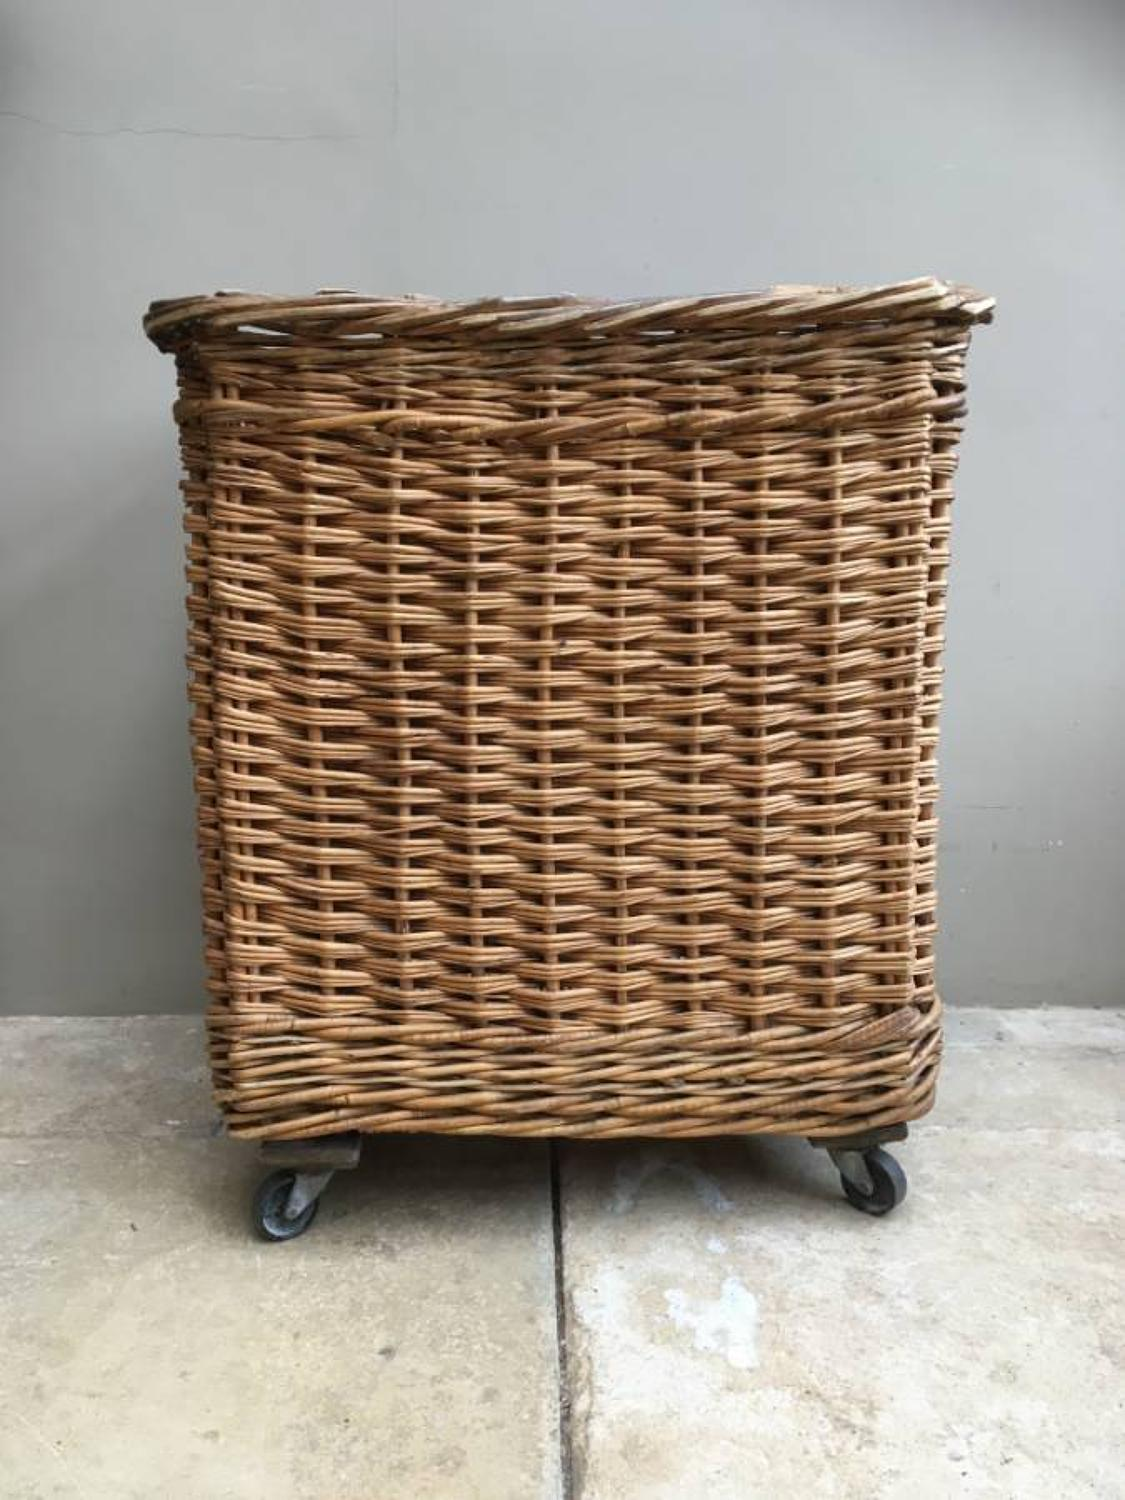 Superb Early 20th Century Laundry Basket on Wheels - Perfect for Logs